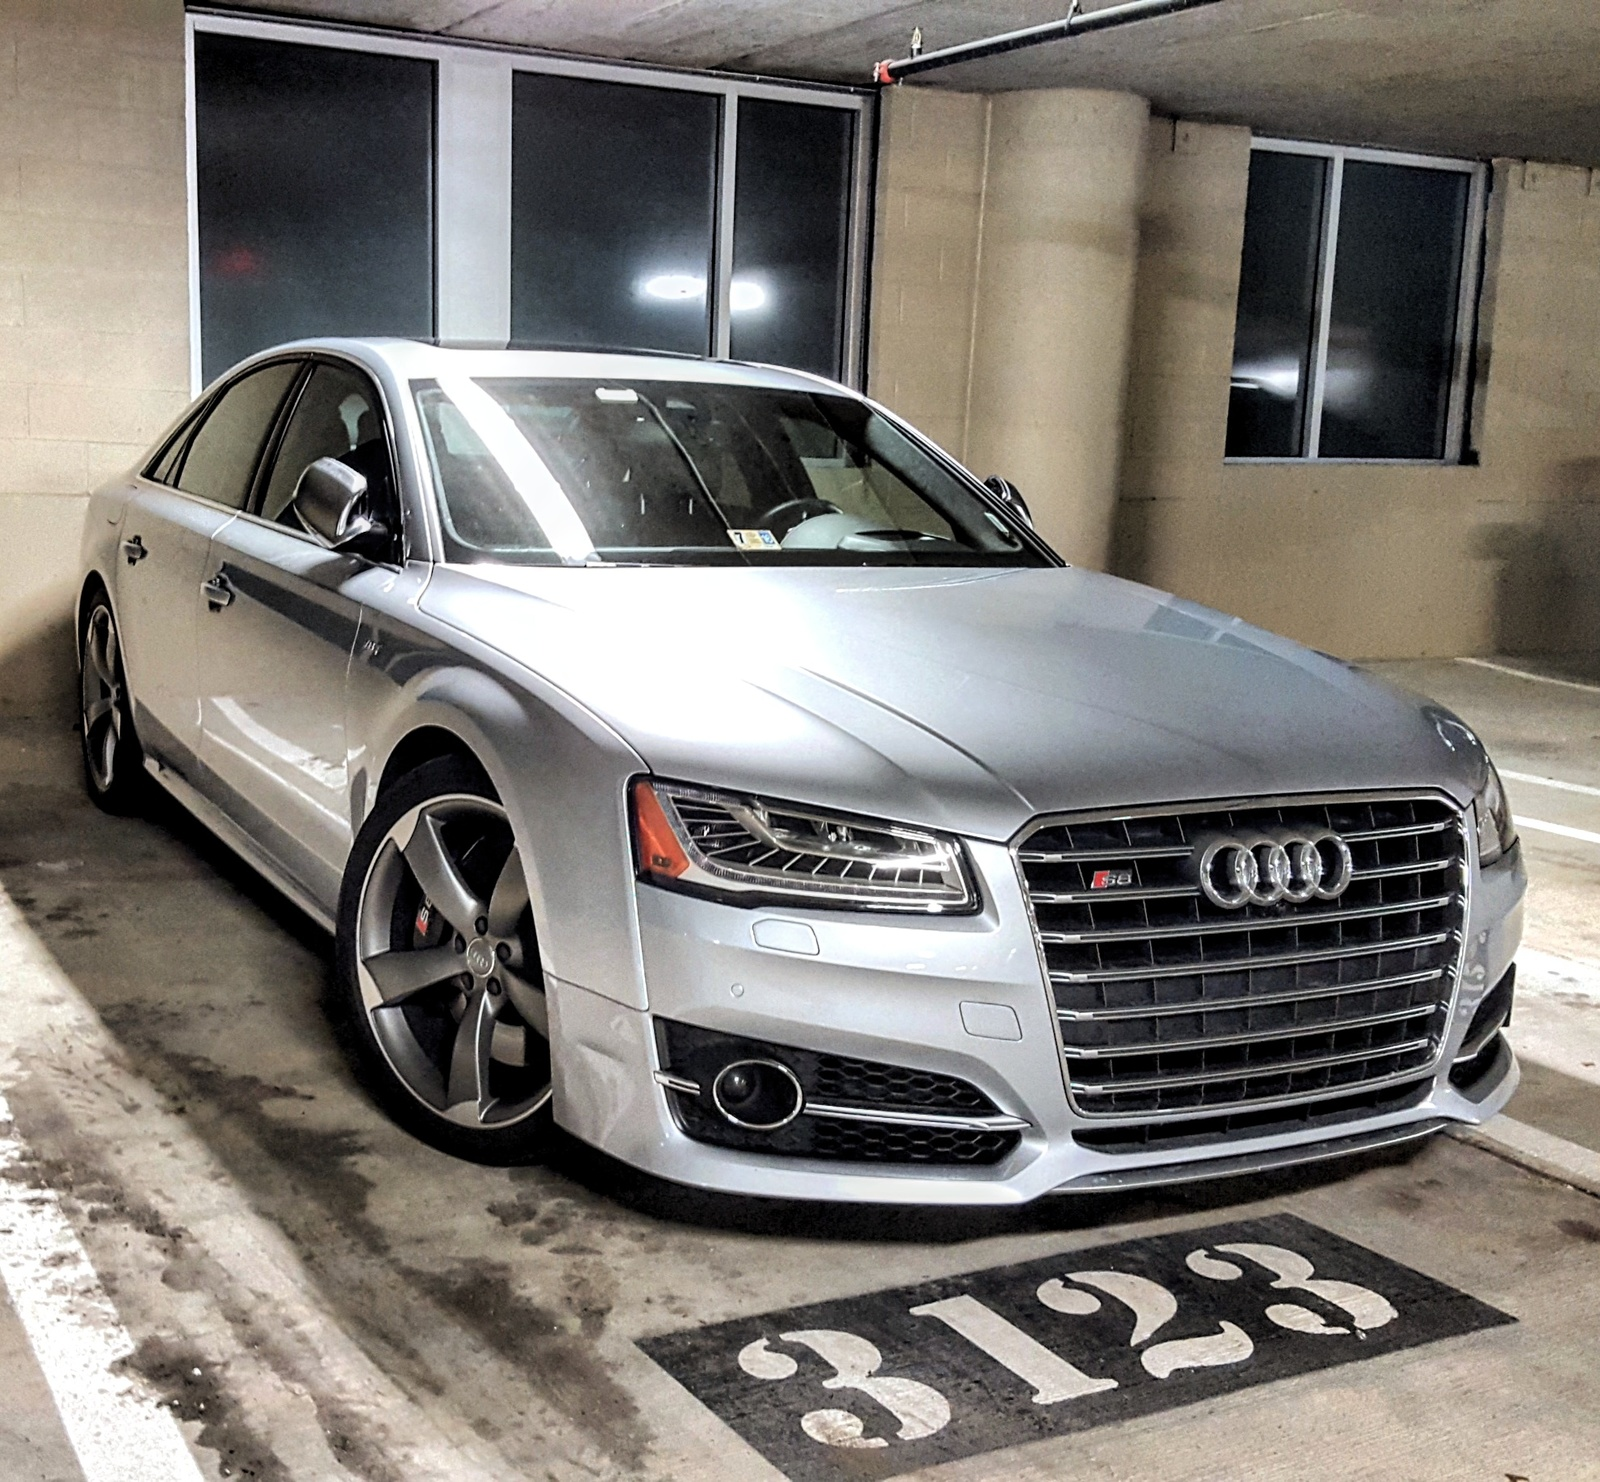 Silver 2015 Audi S8 Apr stage 1 tune